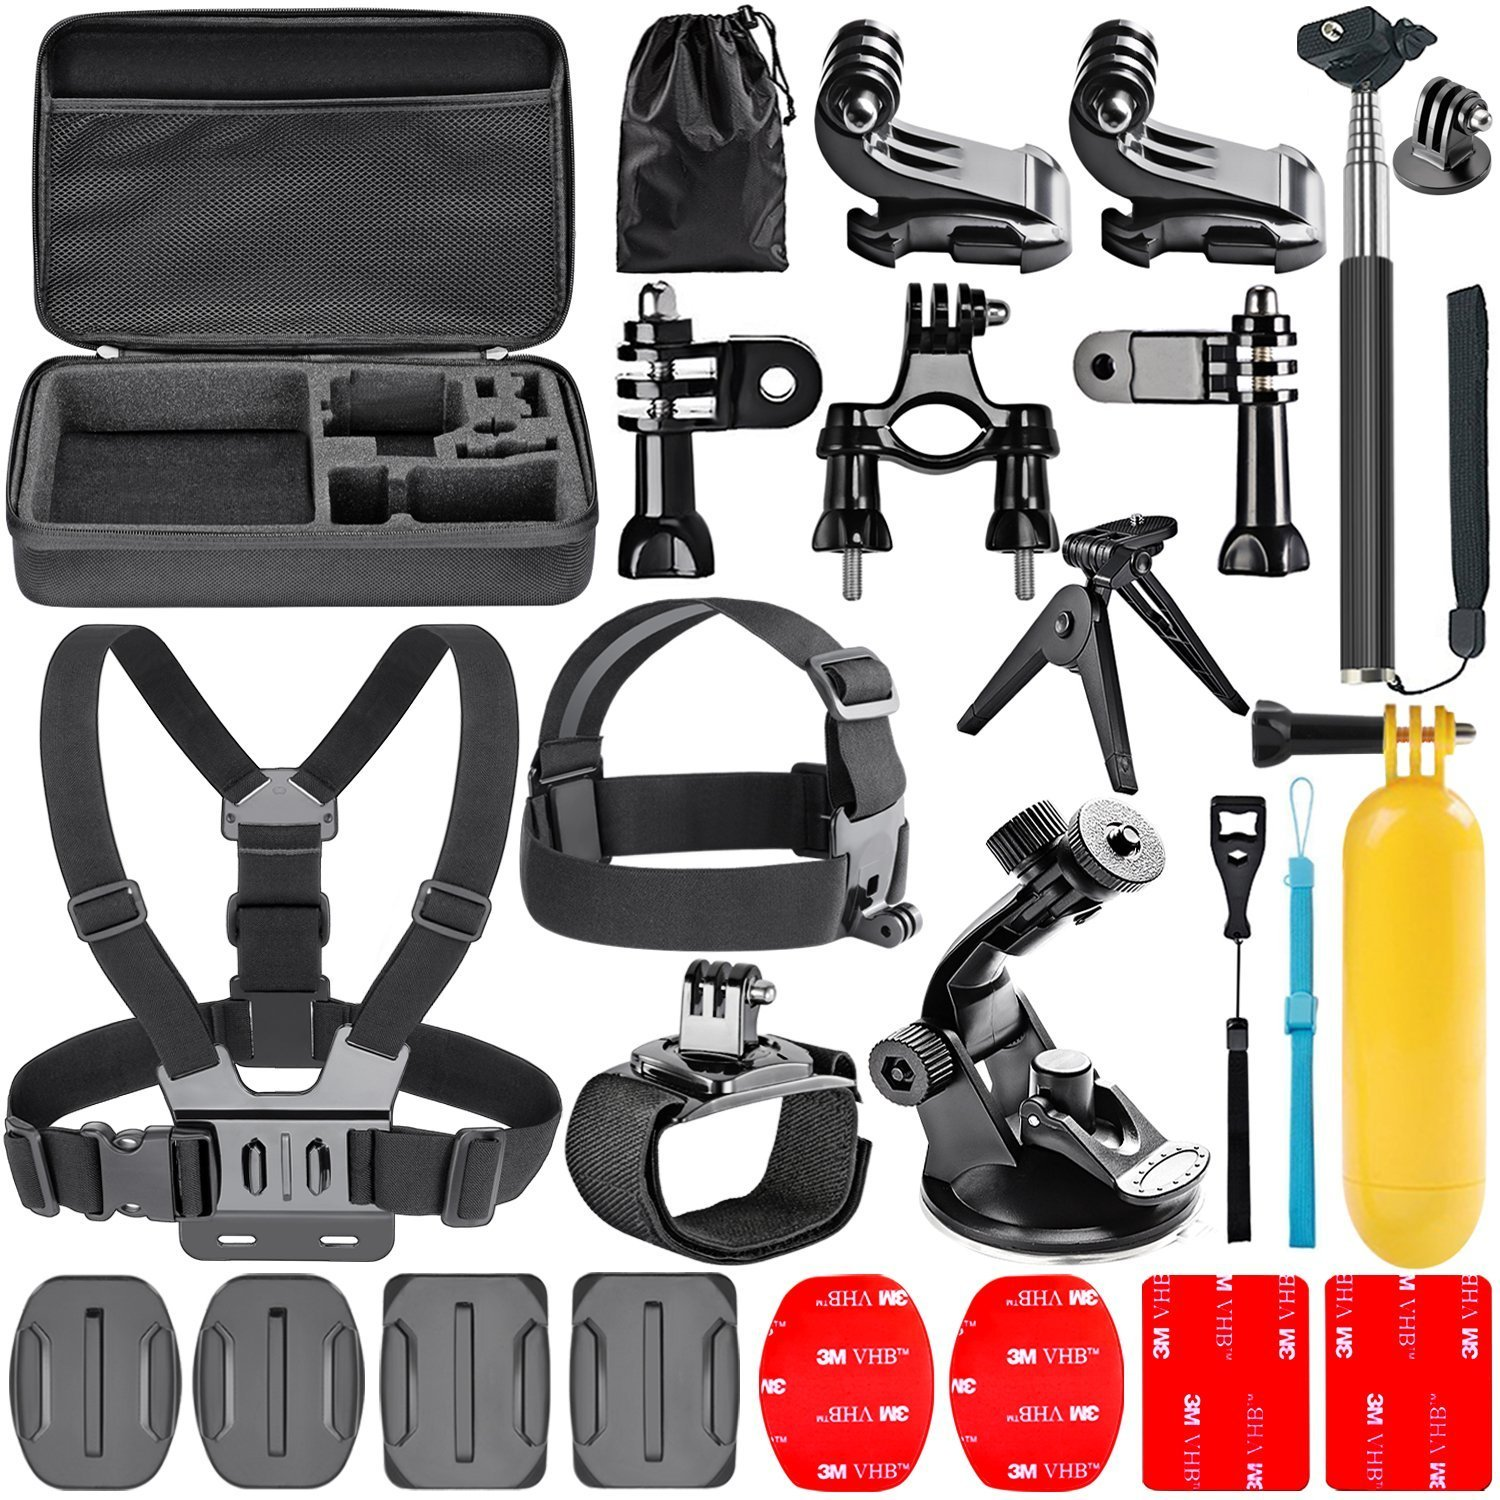 Navitech 18 in 1 Action Camera Accessories Combo Kit with EVA Case for the VIVITAR DVR944 Action Camcorder